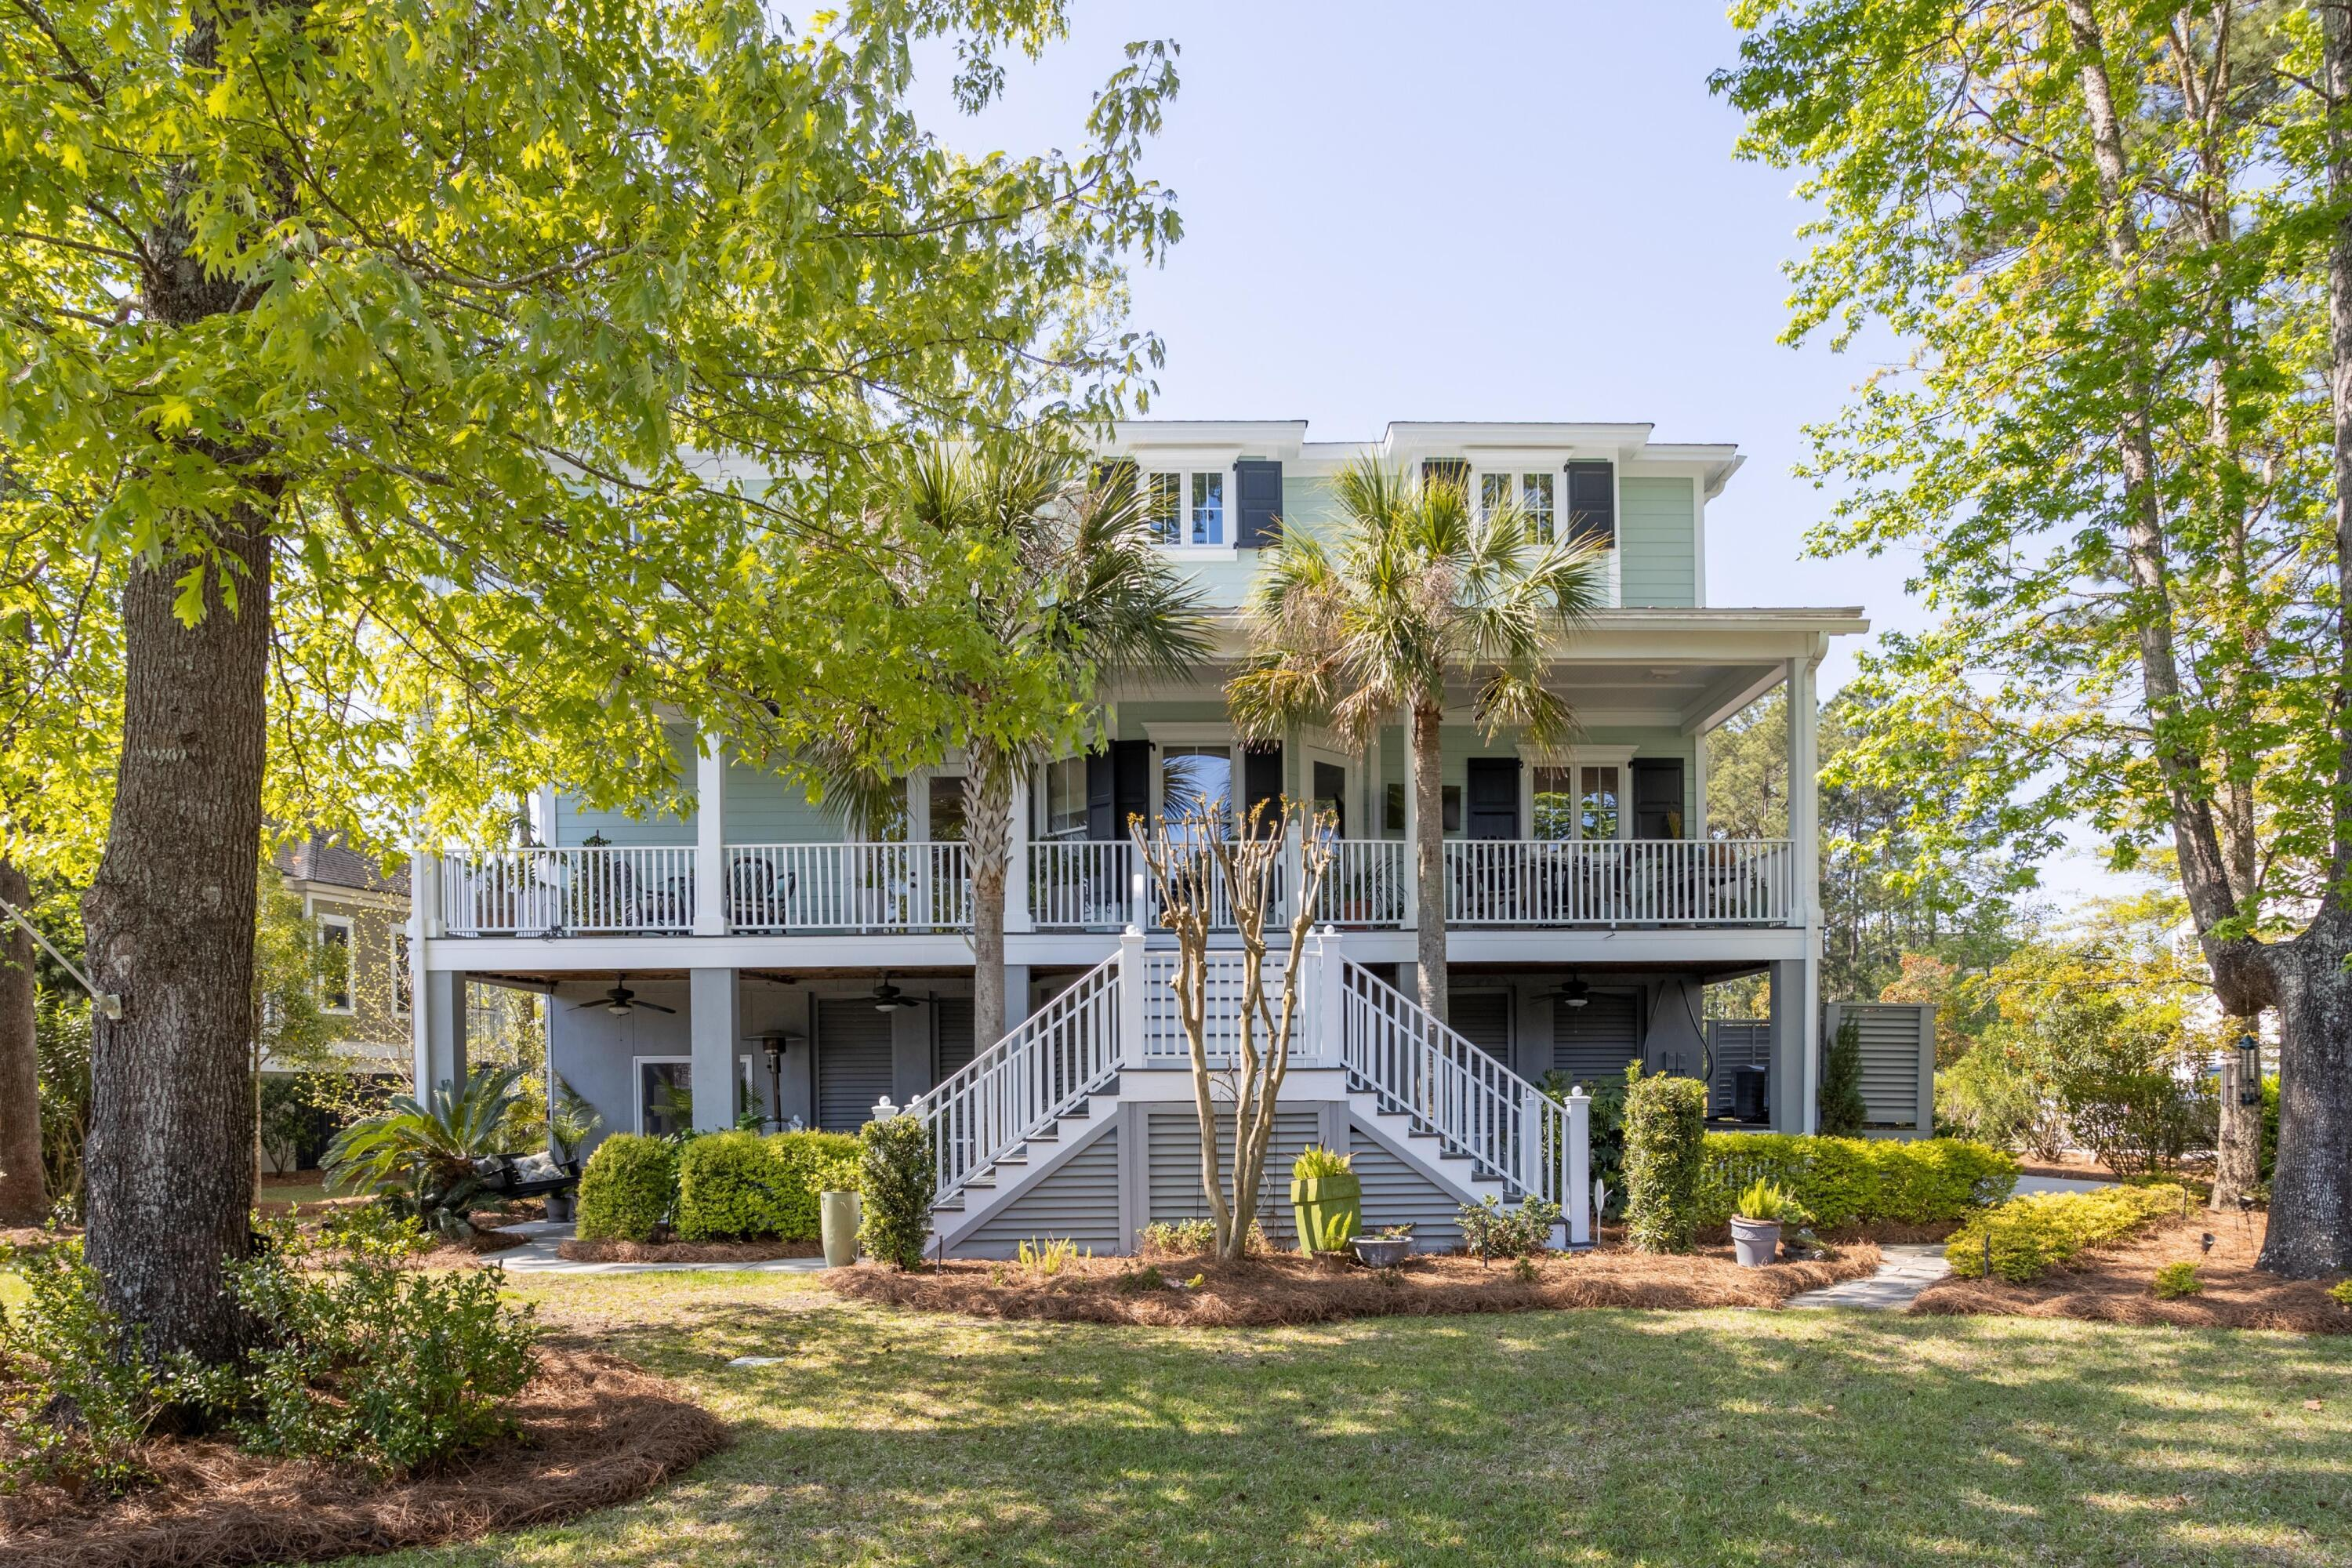 Rivertowne Country Club Homes For Sale - 1629 Rivertowne Country Club, Mount Pleasant, SC - 10